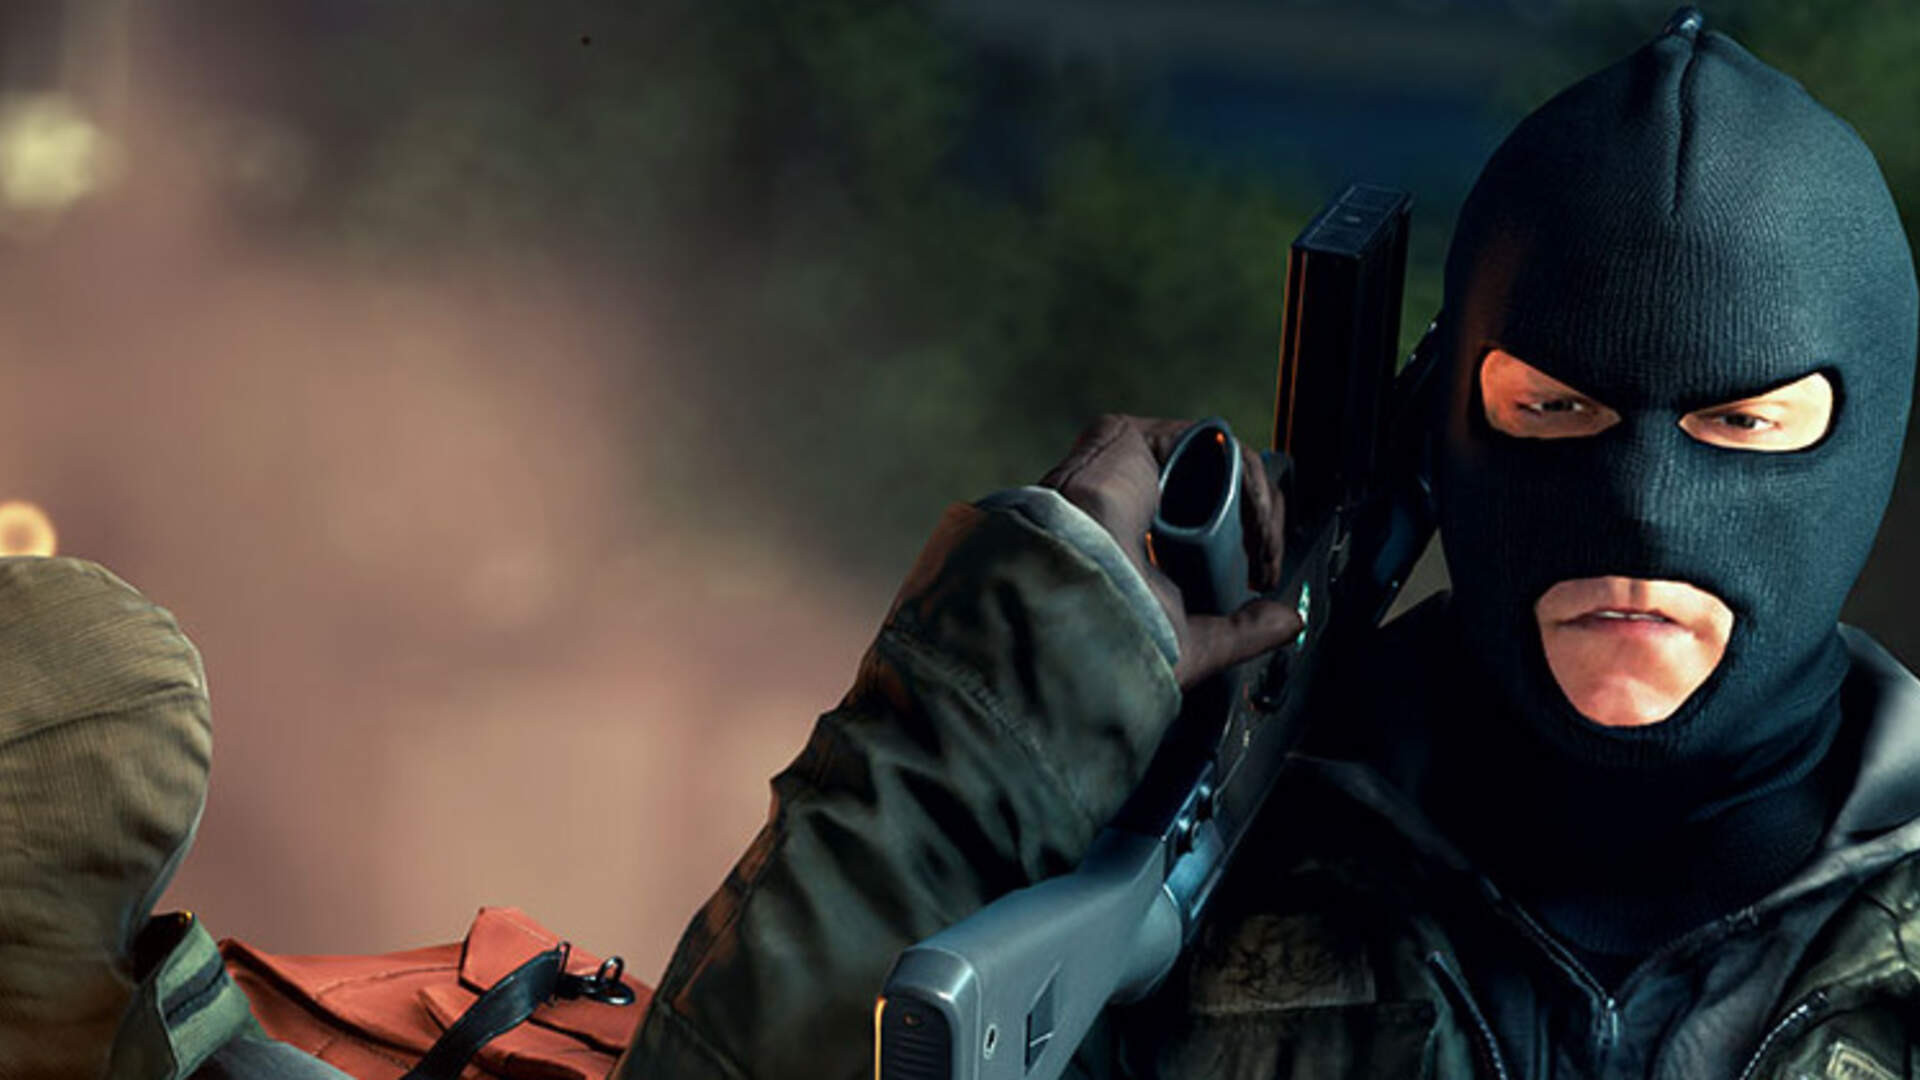 Battlefield Hardline Syndicate Assignment Guide - 300 Knockout and Double-Barrel Shotgun